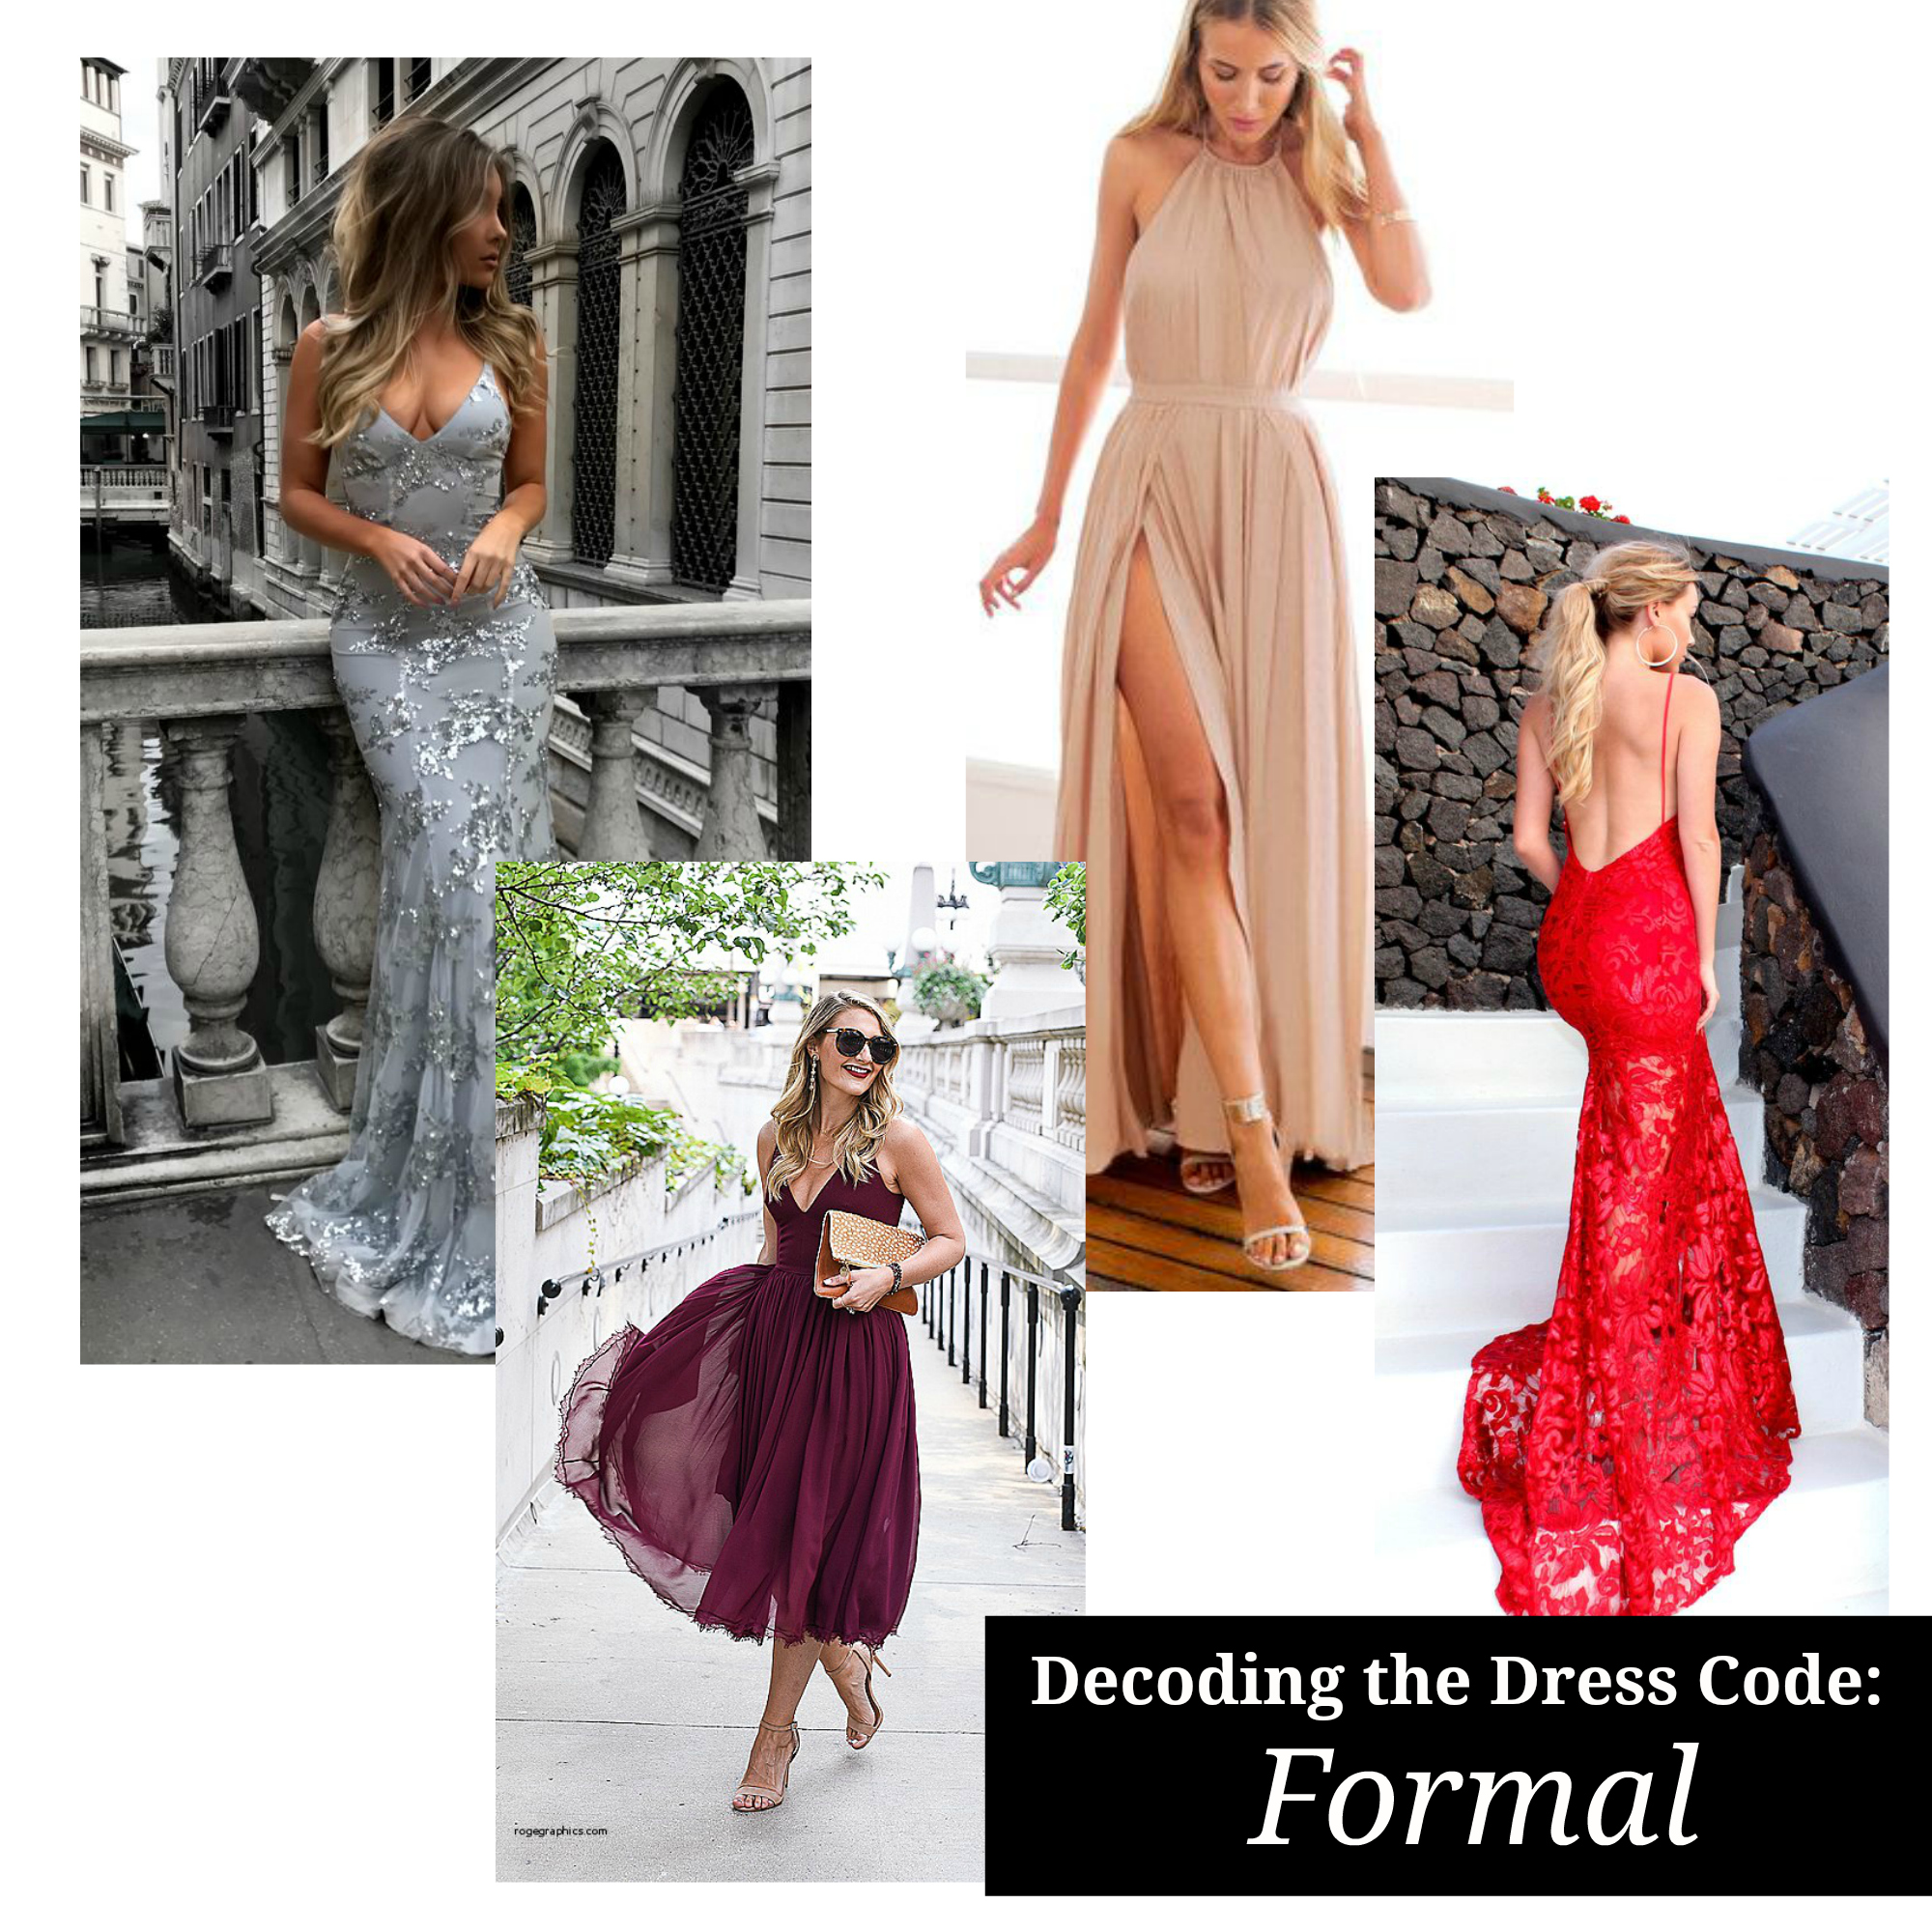 Decoding the Dress Code - What to Wear to a Formal Wedding or Event